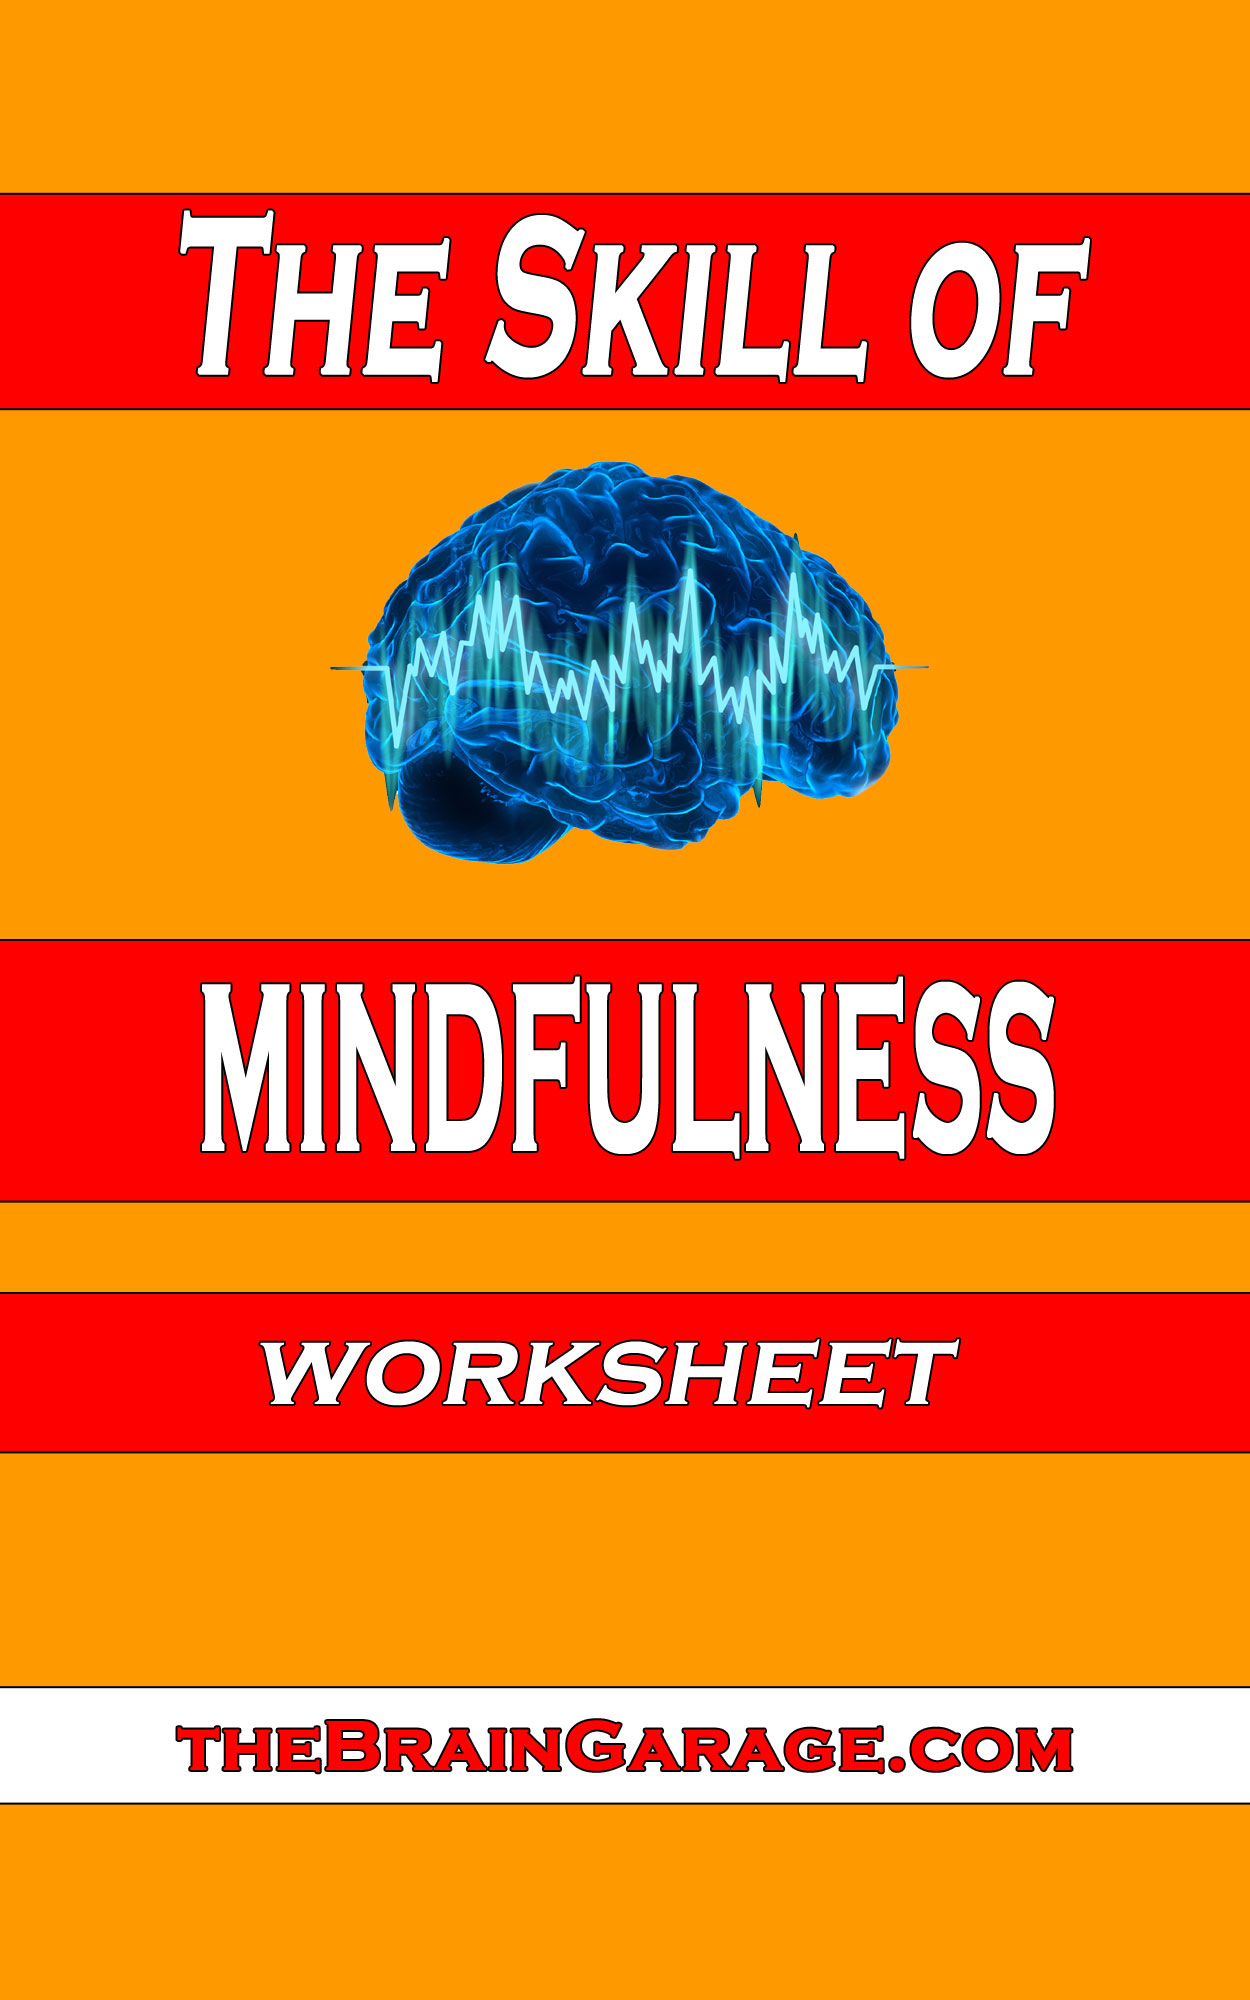 Get The Free Skill Of Mindfulness Worksheet